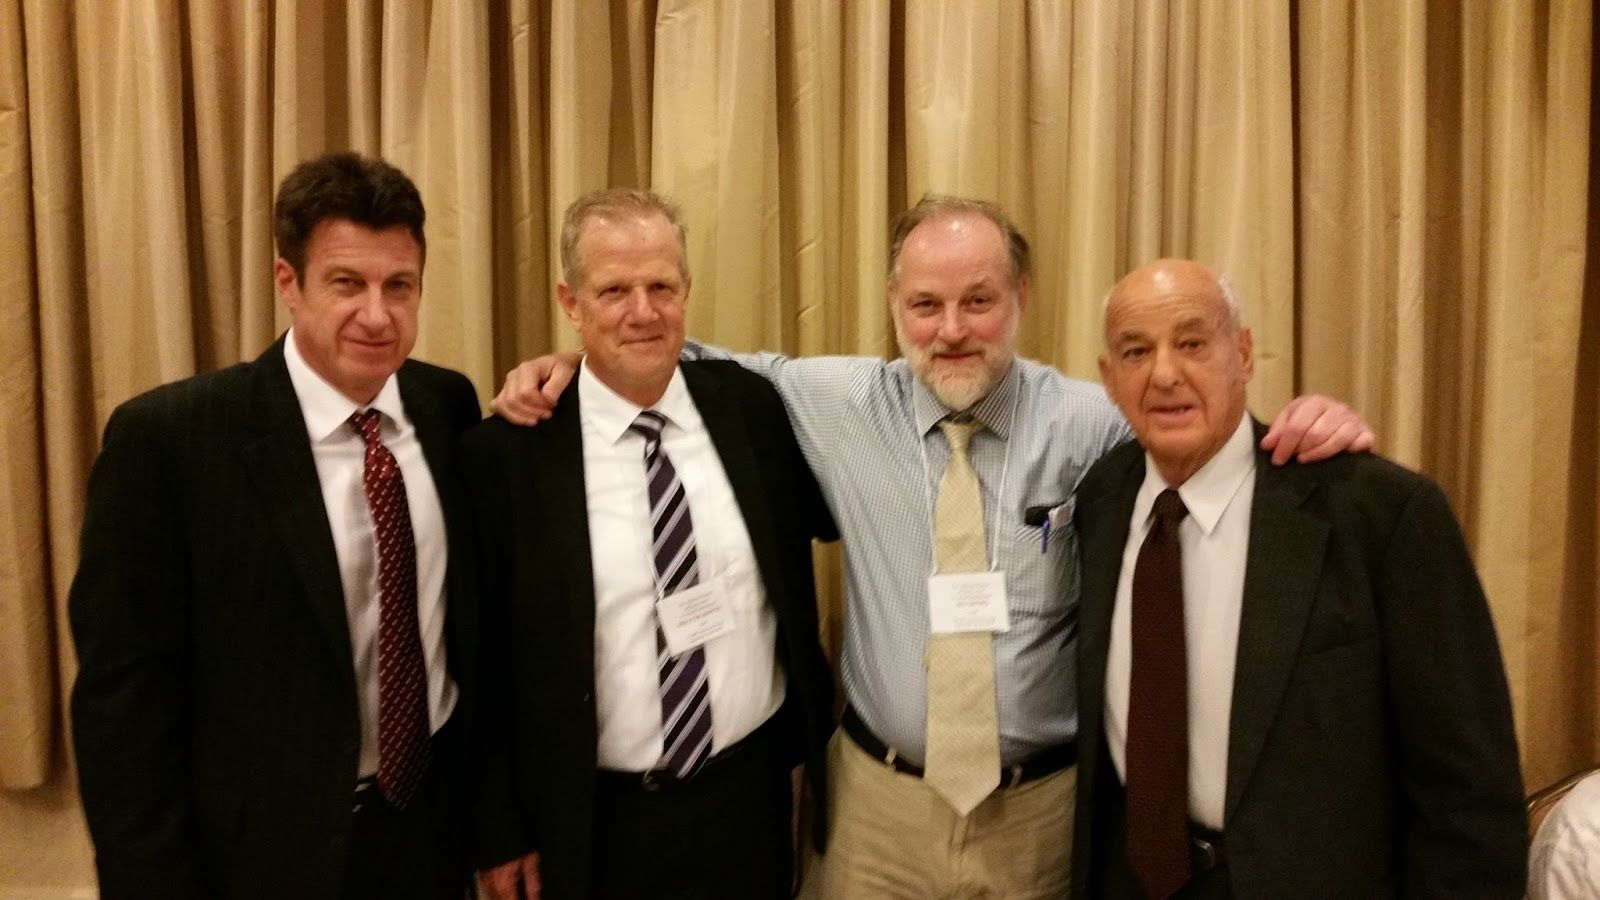 JFK Historical Group: David Denton, Walter Boyes, Ed Tatro, Cyril Wecht